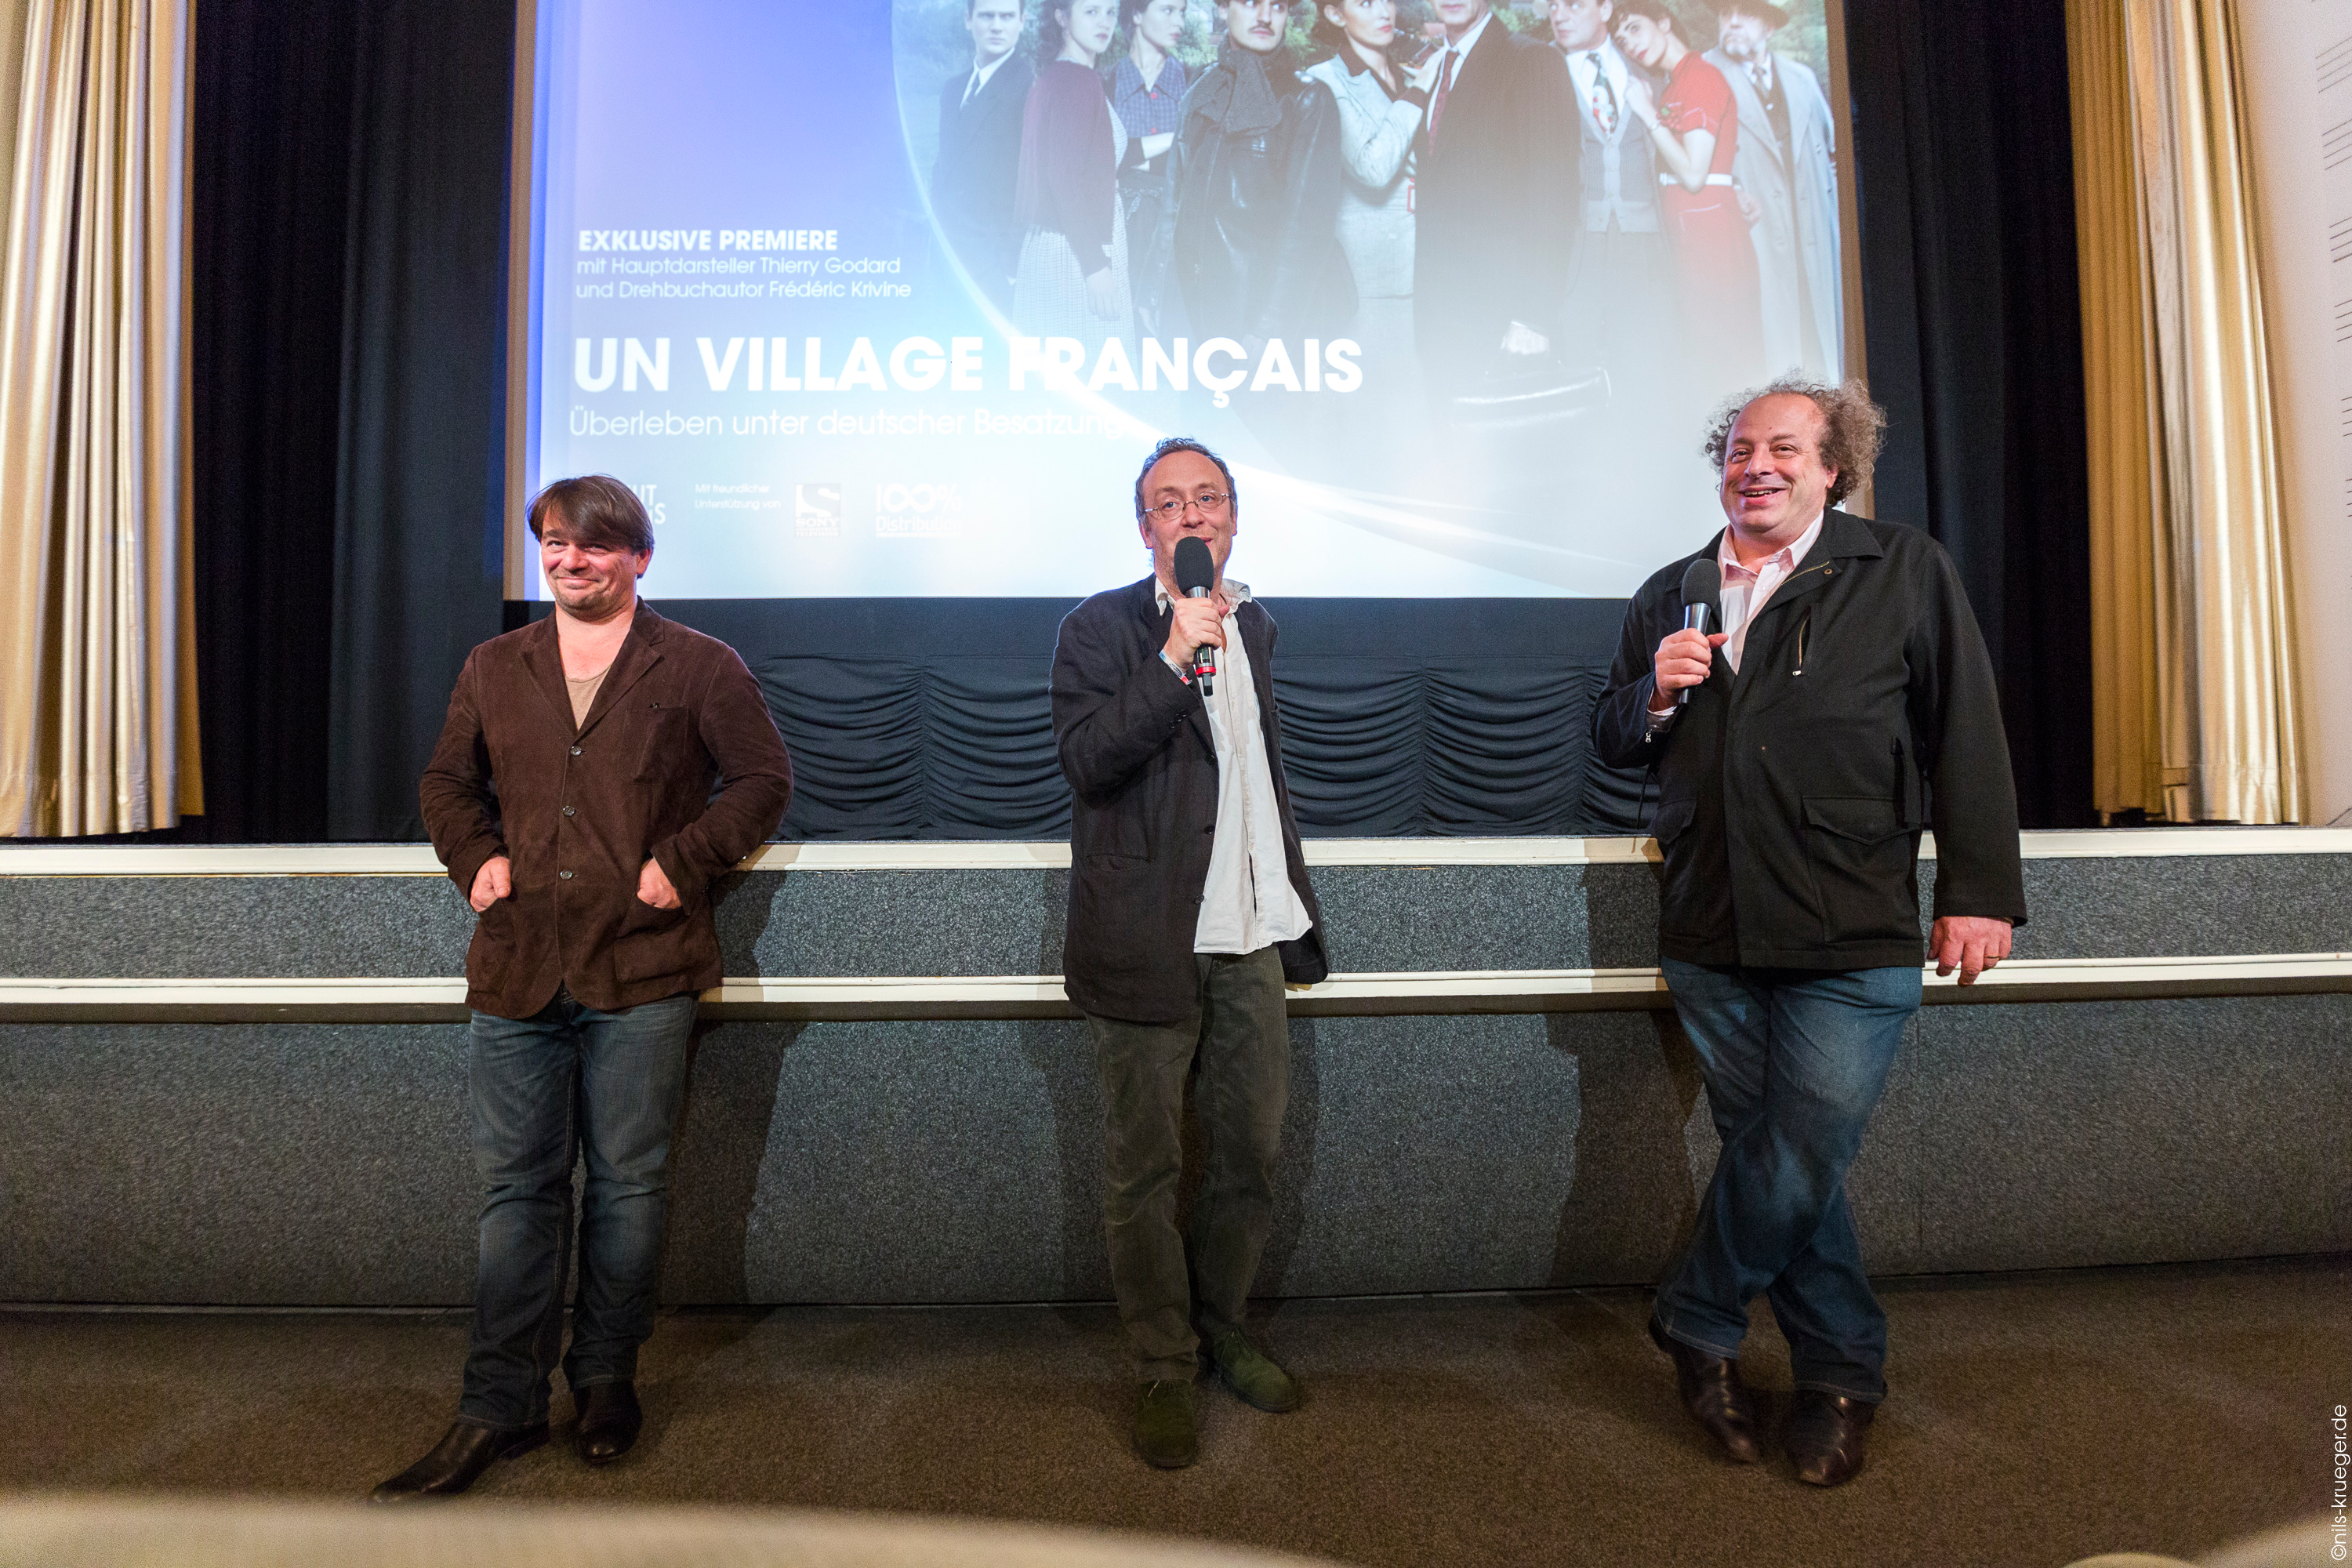 un-village-francais-screening8